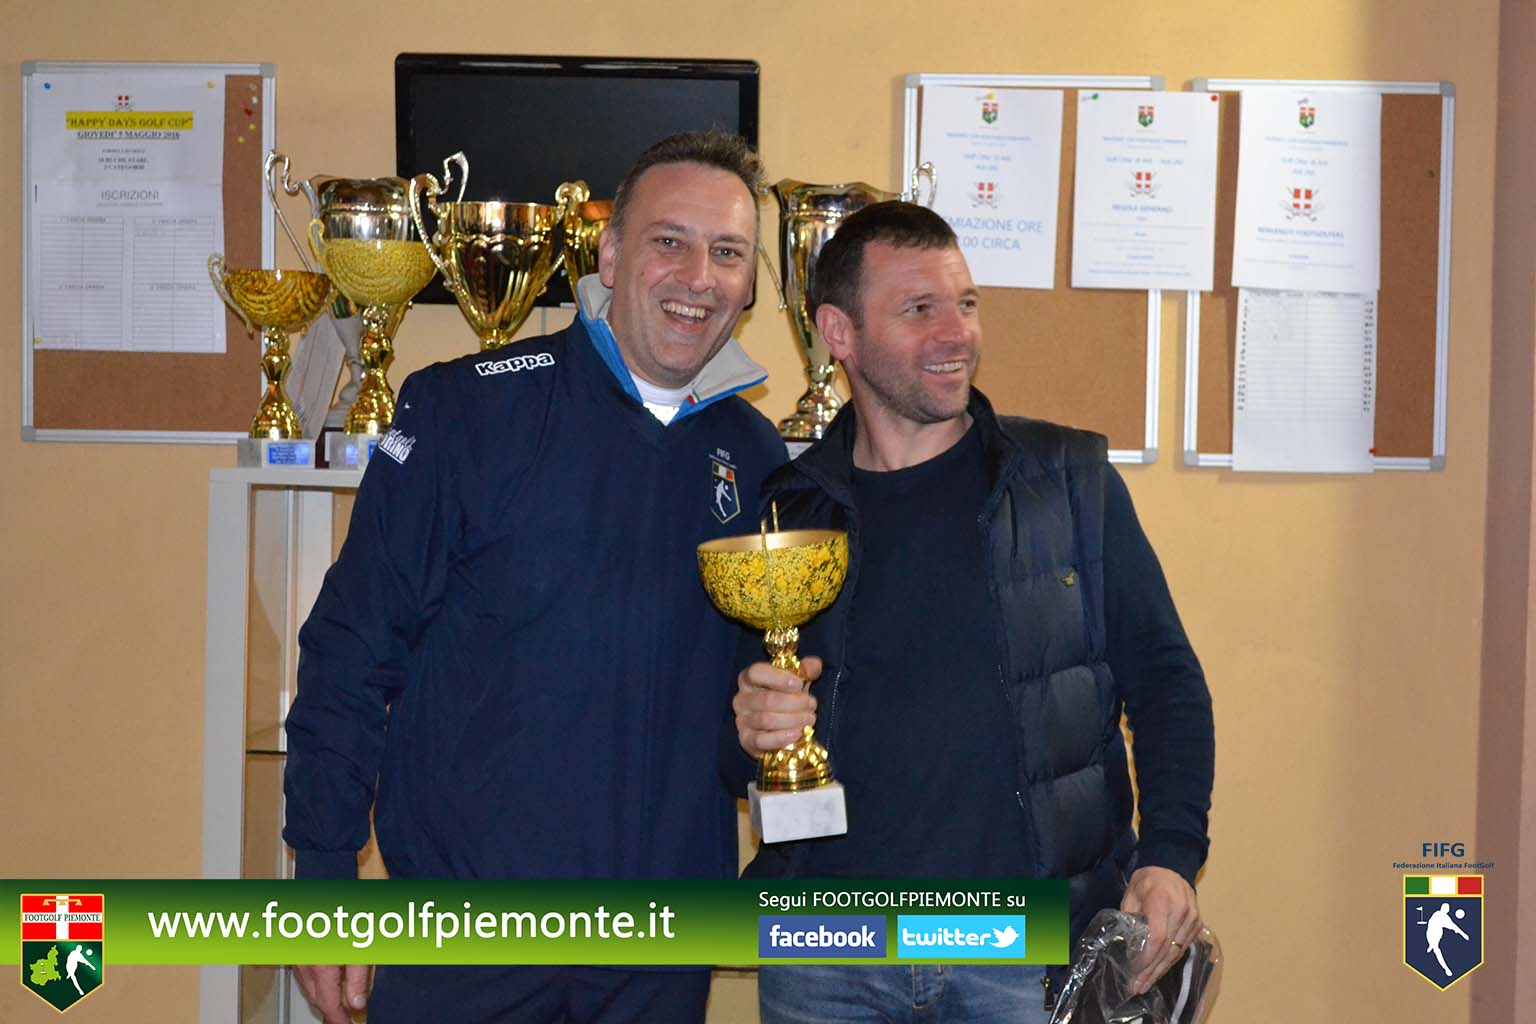 FOTO 9 Regions' Cup Footgolf Piemonte 2016 Golf Città di Asti (At) 30apr16-116